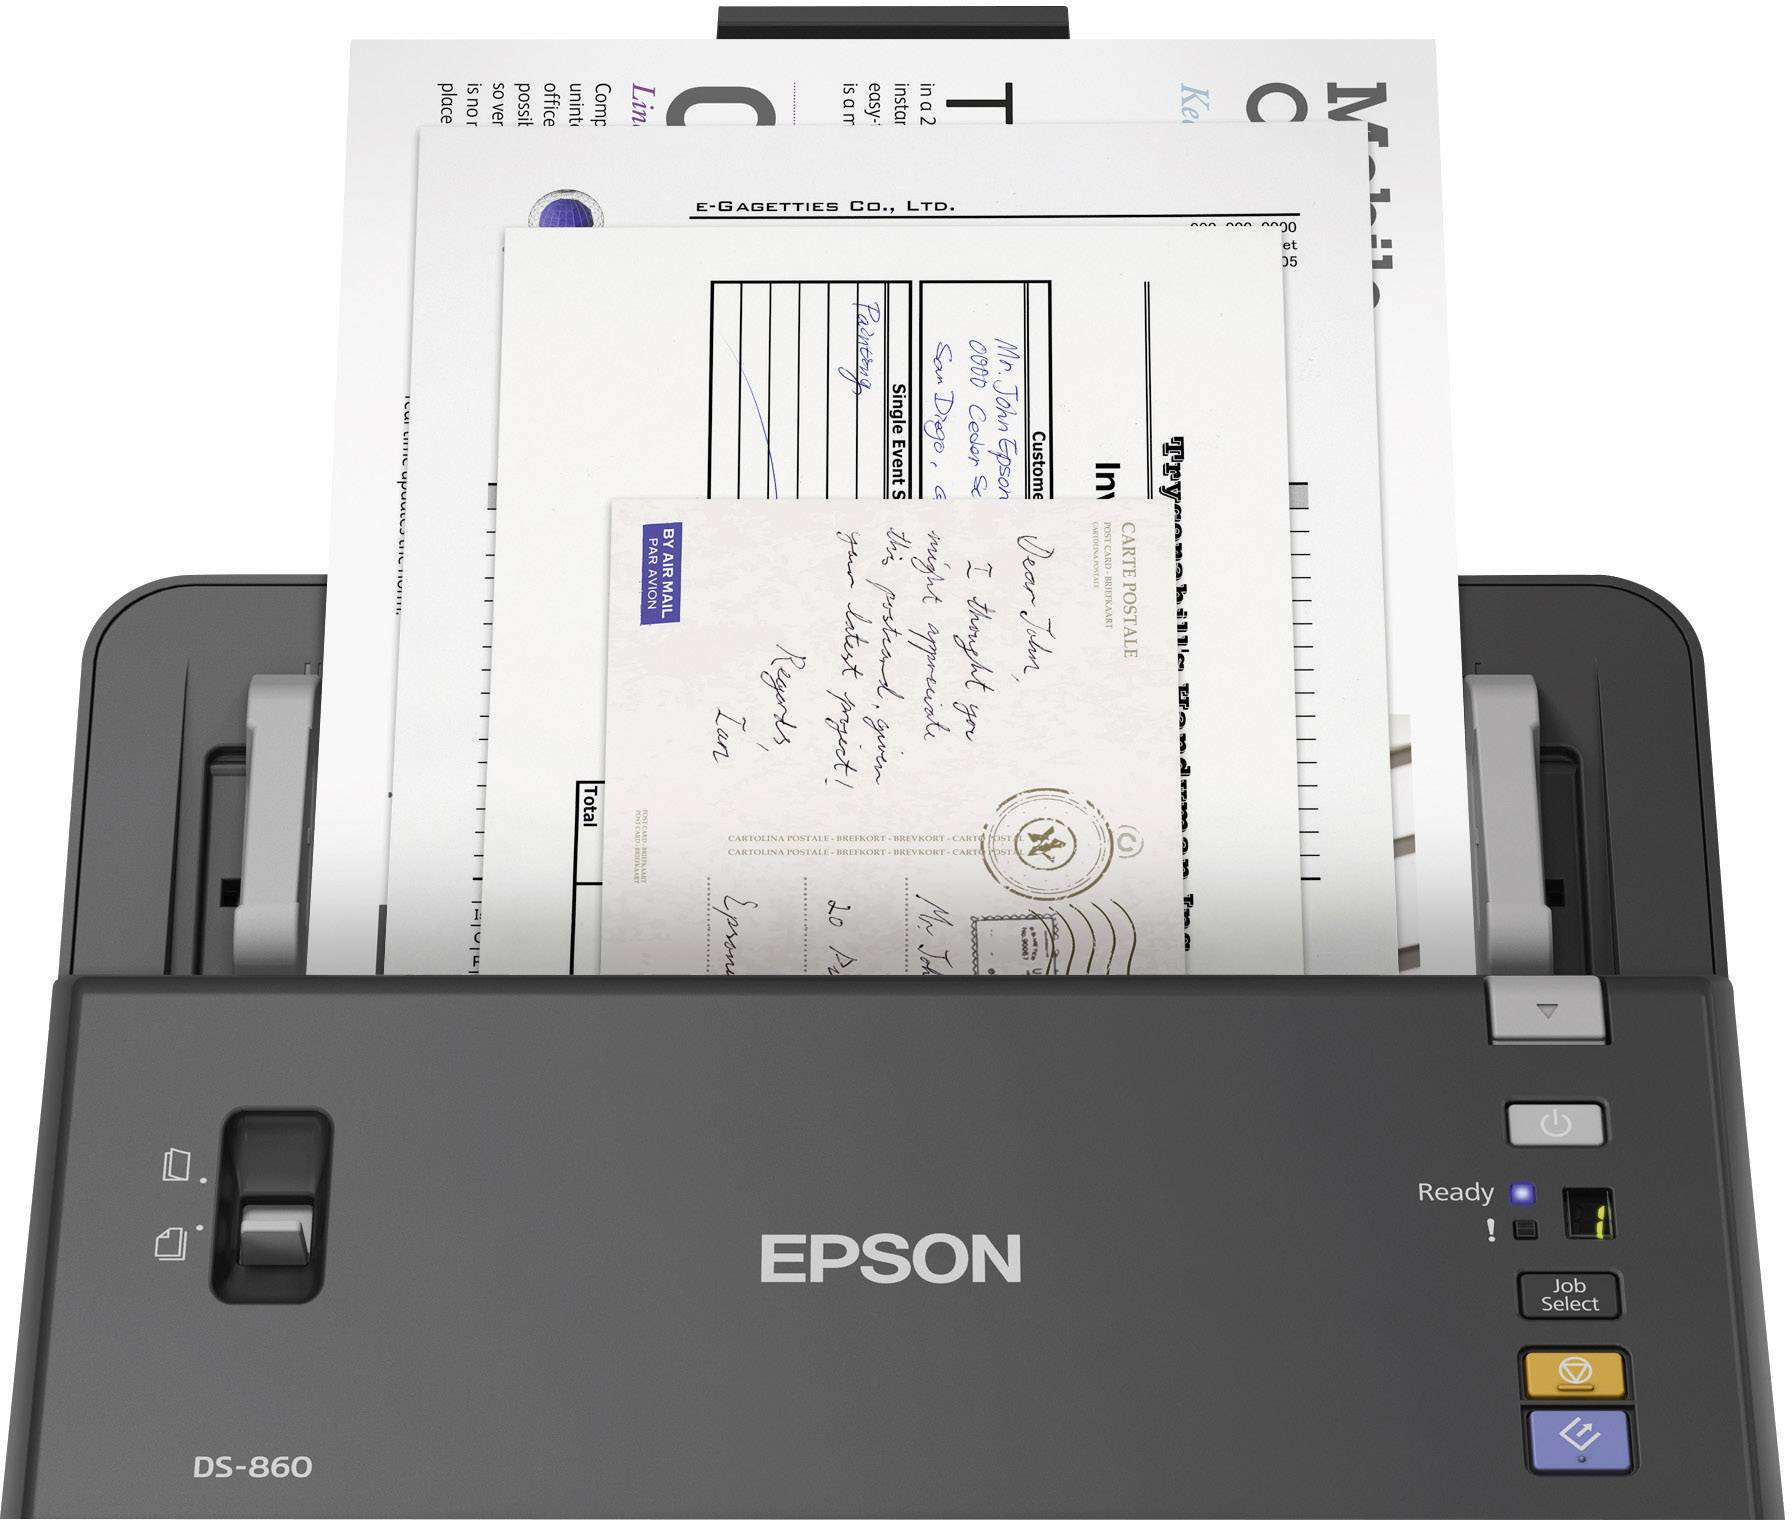 duplex document scanner a4 epson workforce ds 860 600 x 600 dpi 65 rh conrad com